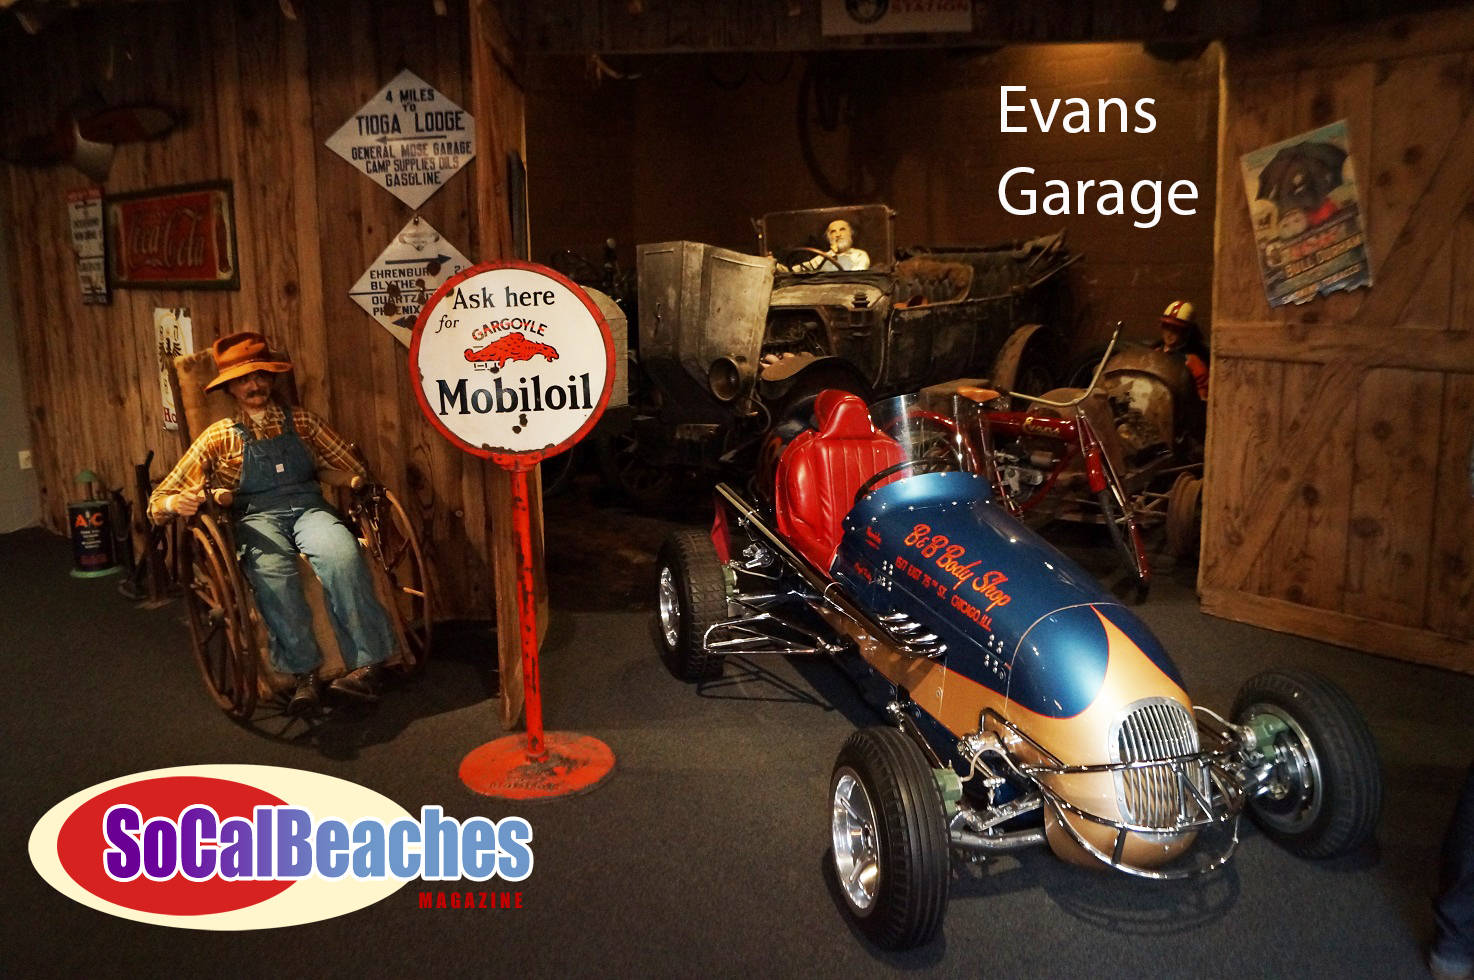 The Evans Family vintage car collection